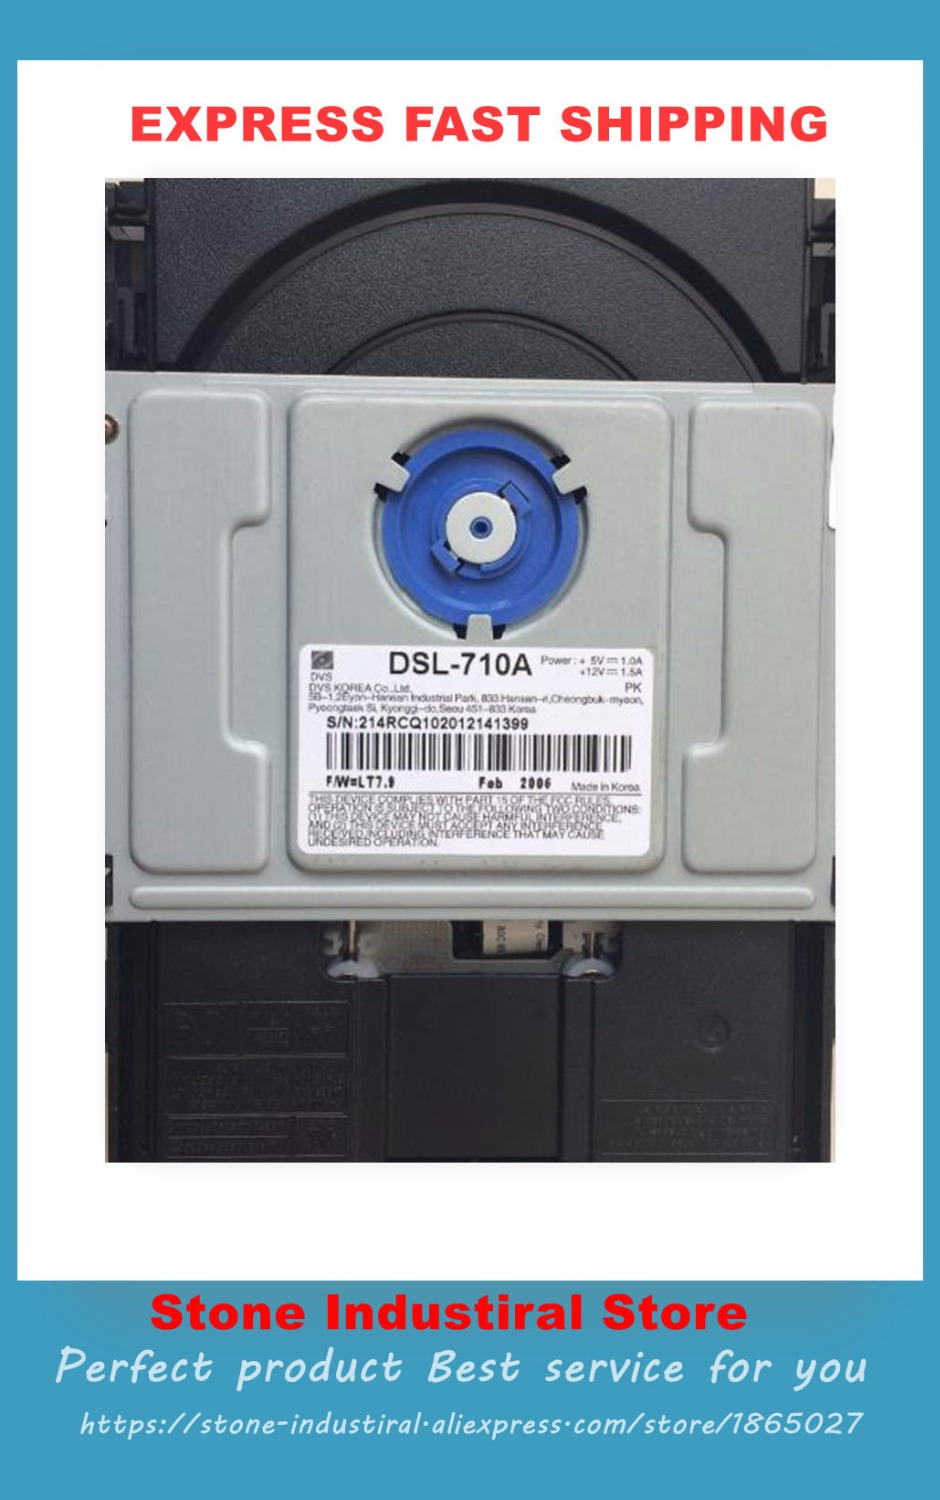 DSL-710A DSL710A New Original Rom boxed original dvs dsl 710a dsl710a dsl 710a dvd rom for primare cd21 cd31 cdi10